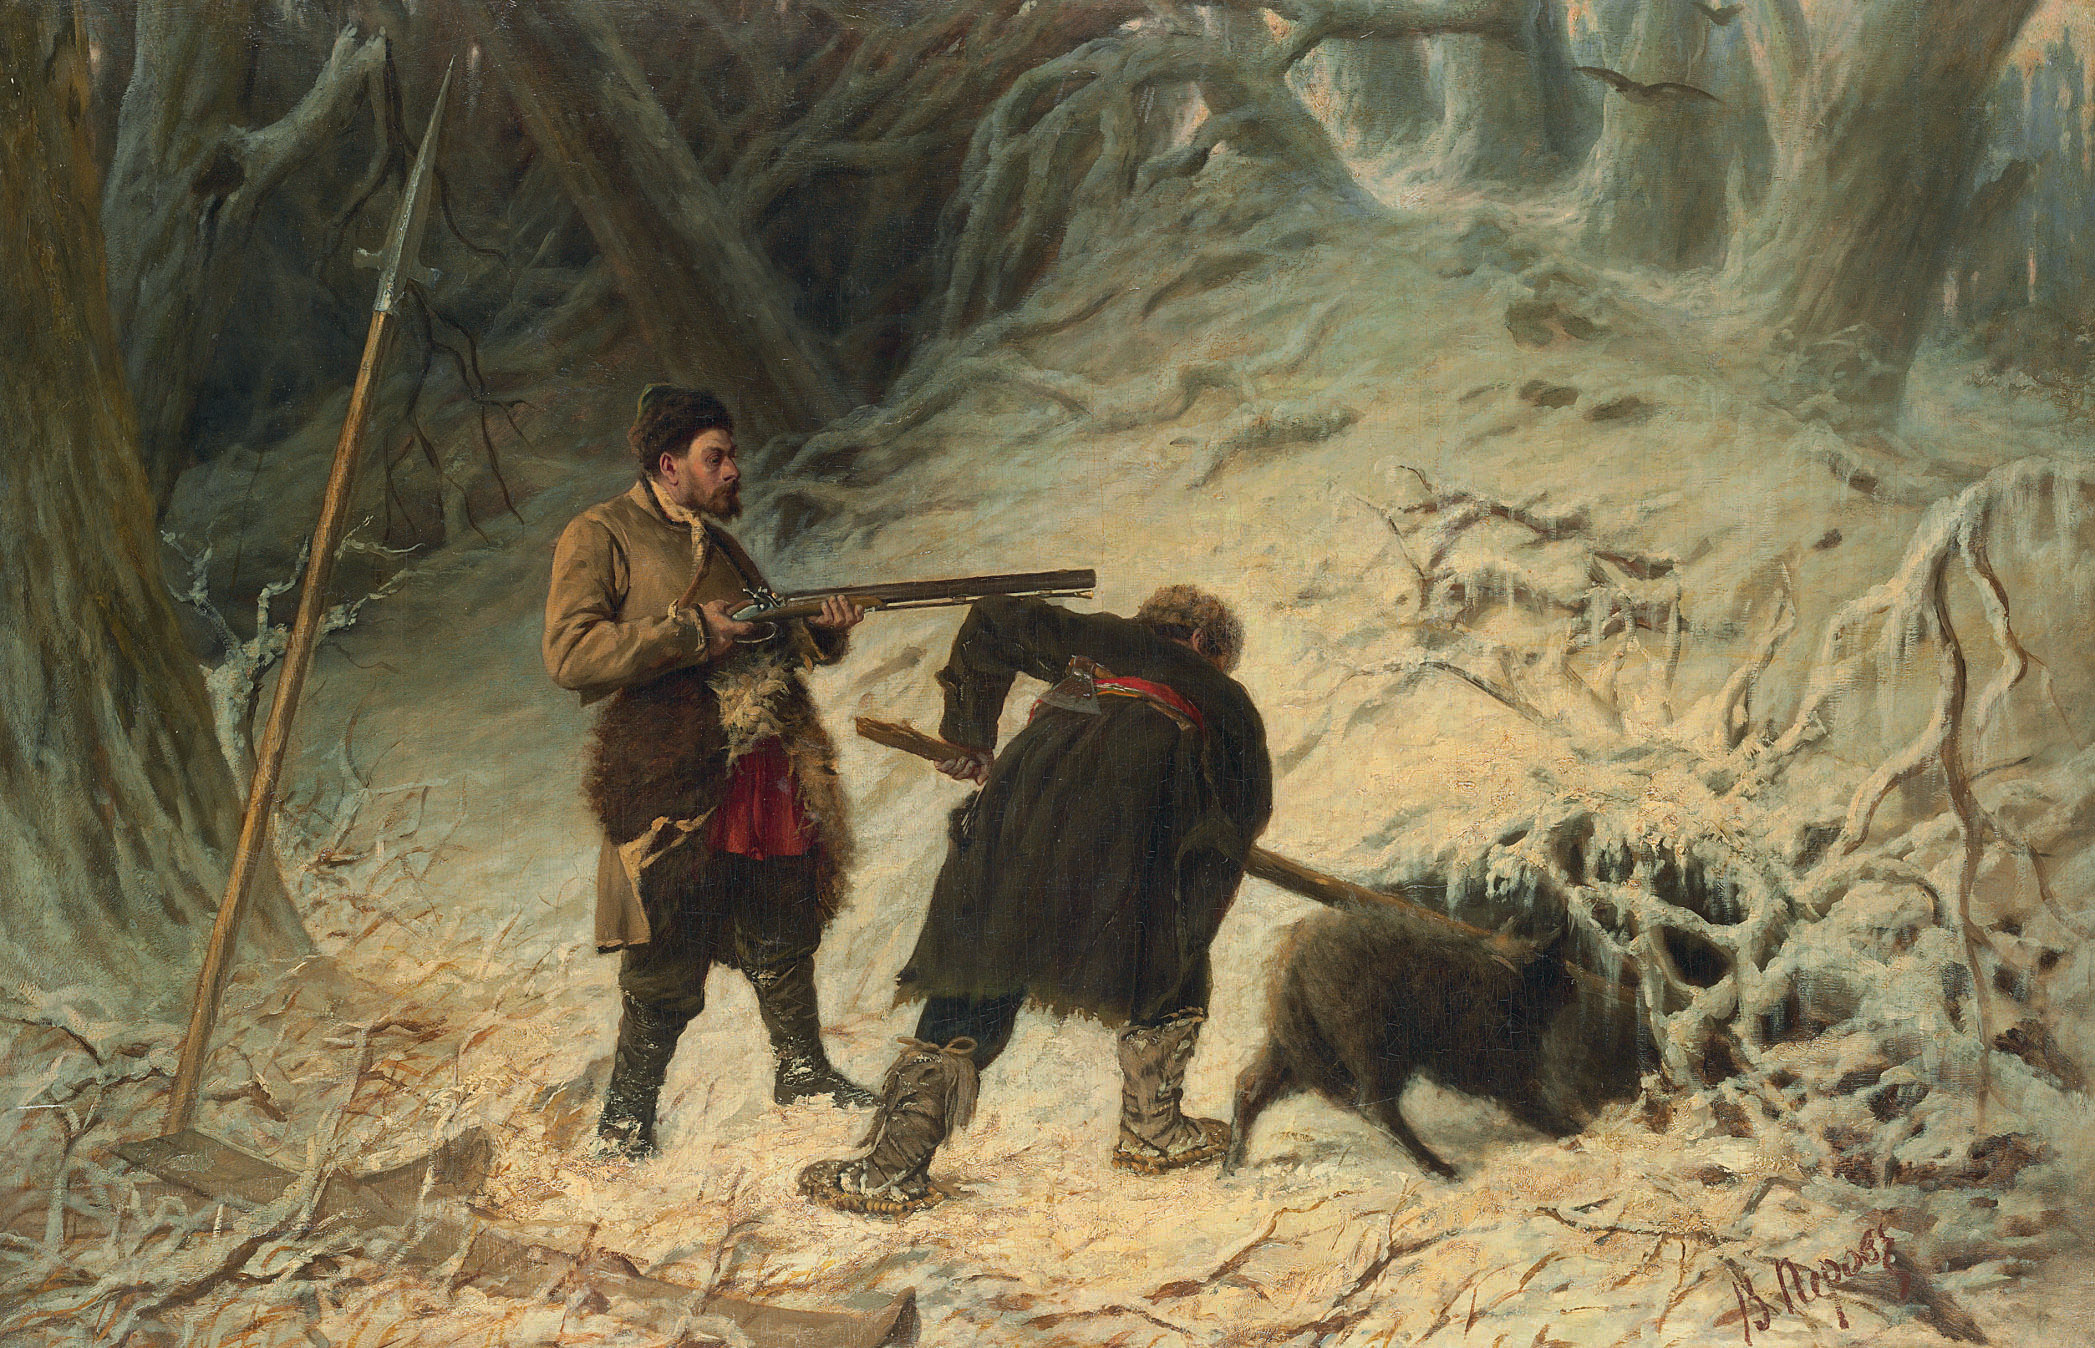 Hunting for boar